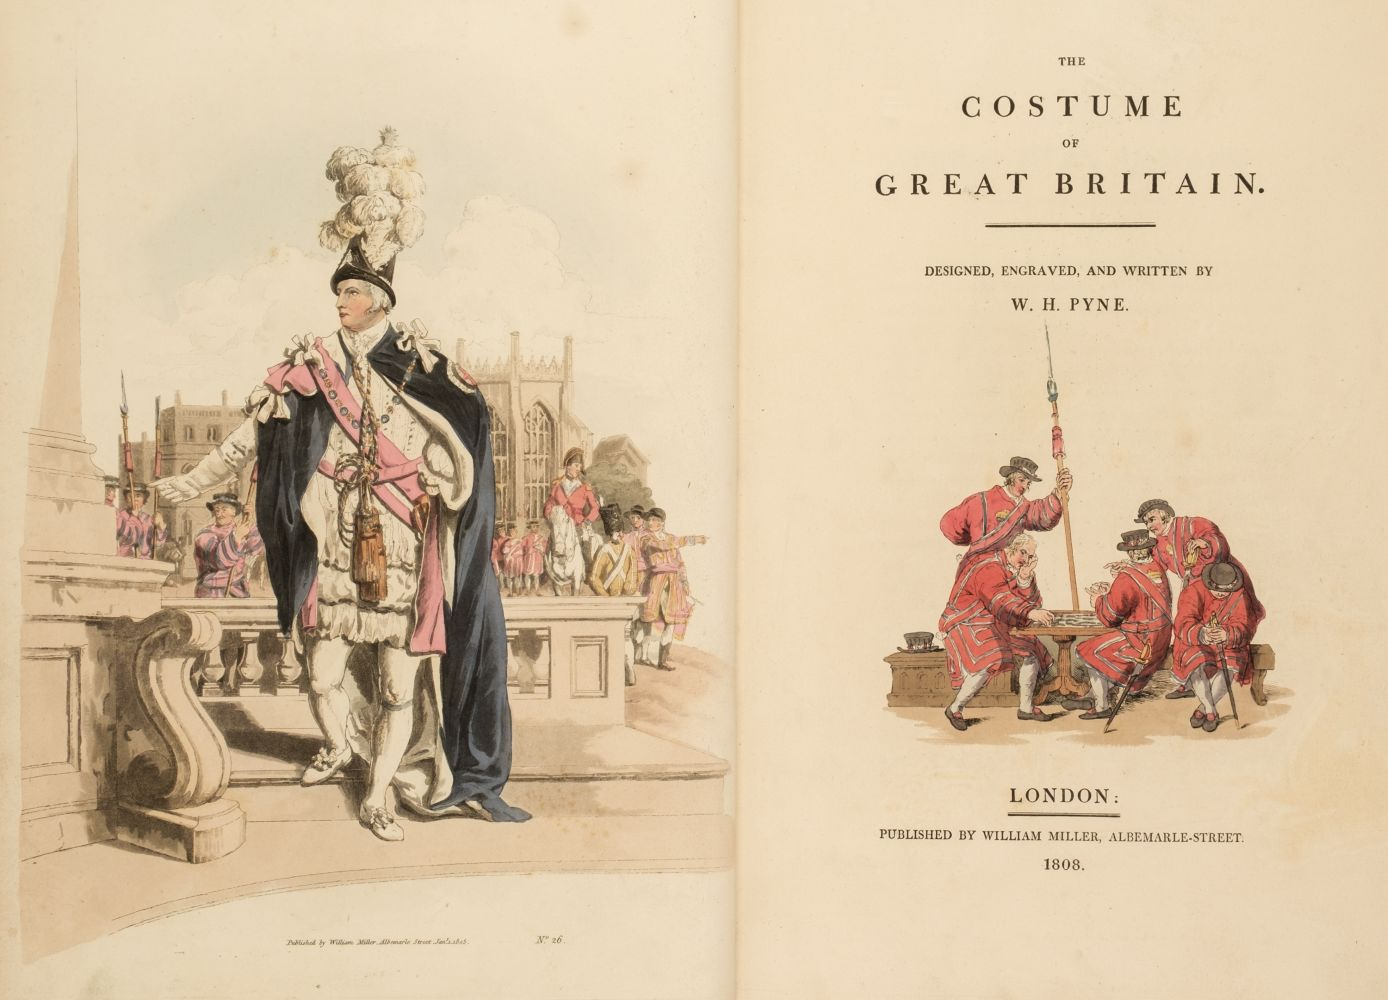 Pyne (William Henry). The Costume of Great Britain, William Miller, 1808 - Image 2 of 4